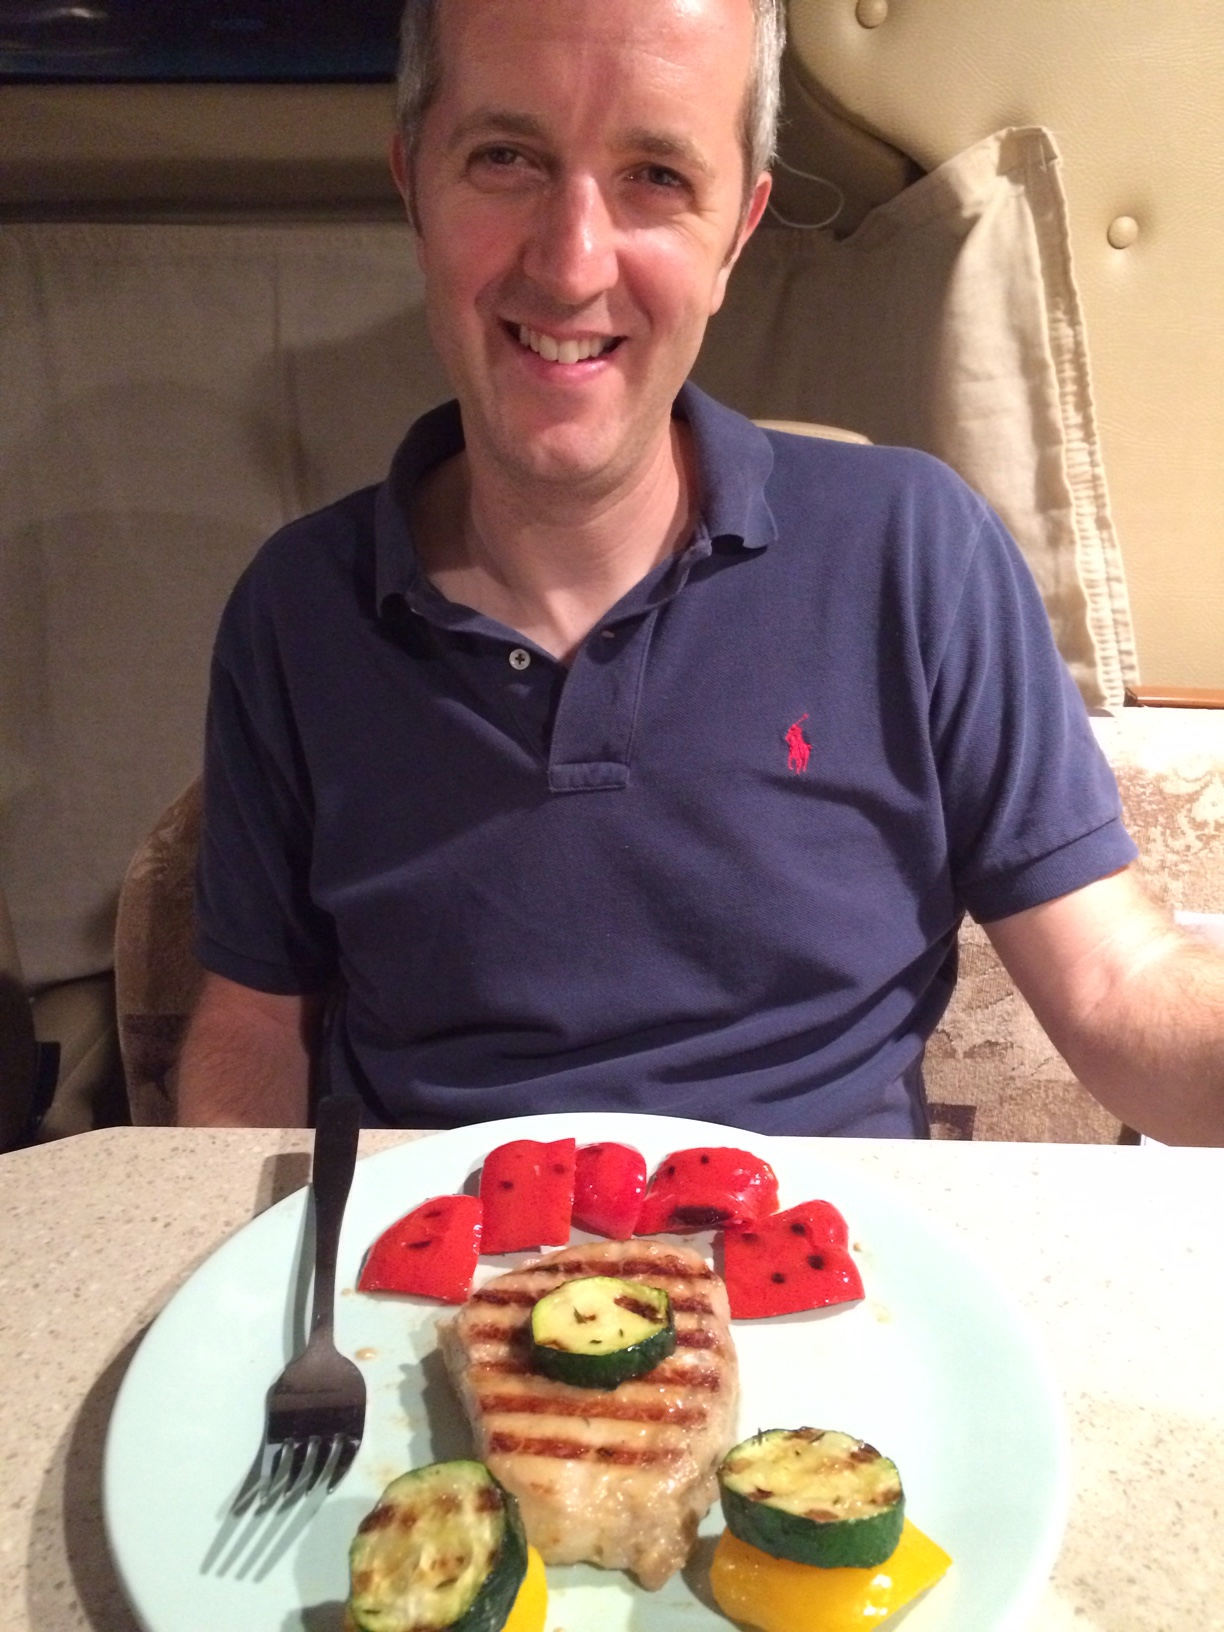 English hubby with happy face grilling